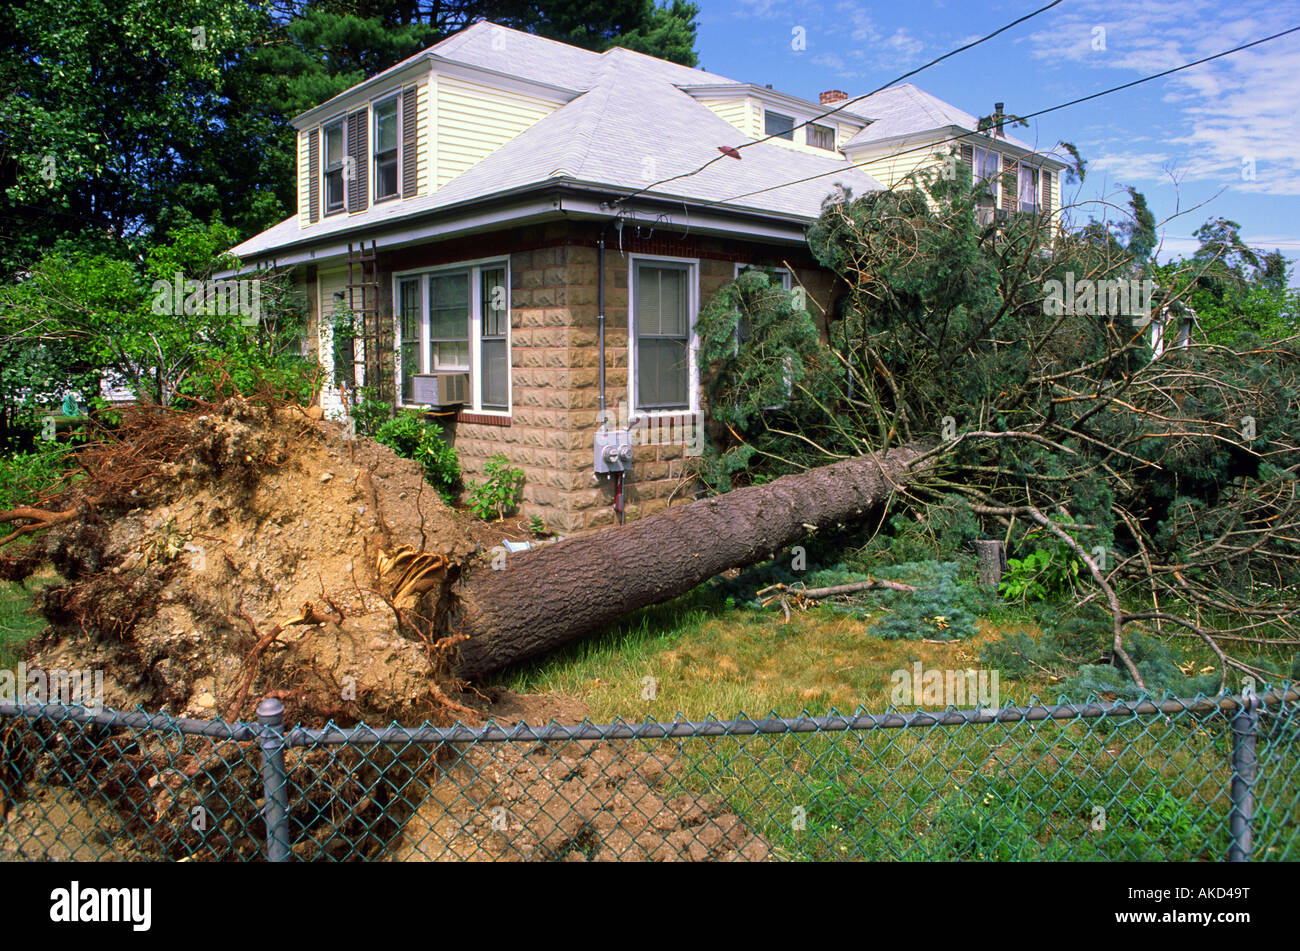 Wind storm aftermath a fallen tree narrowly missed a house - Stock Image